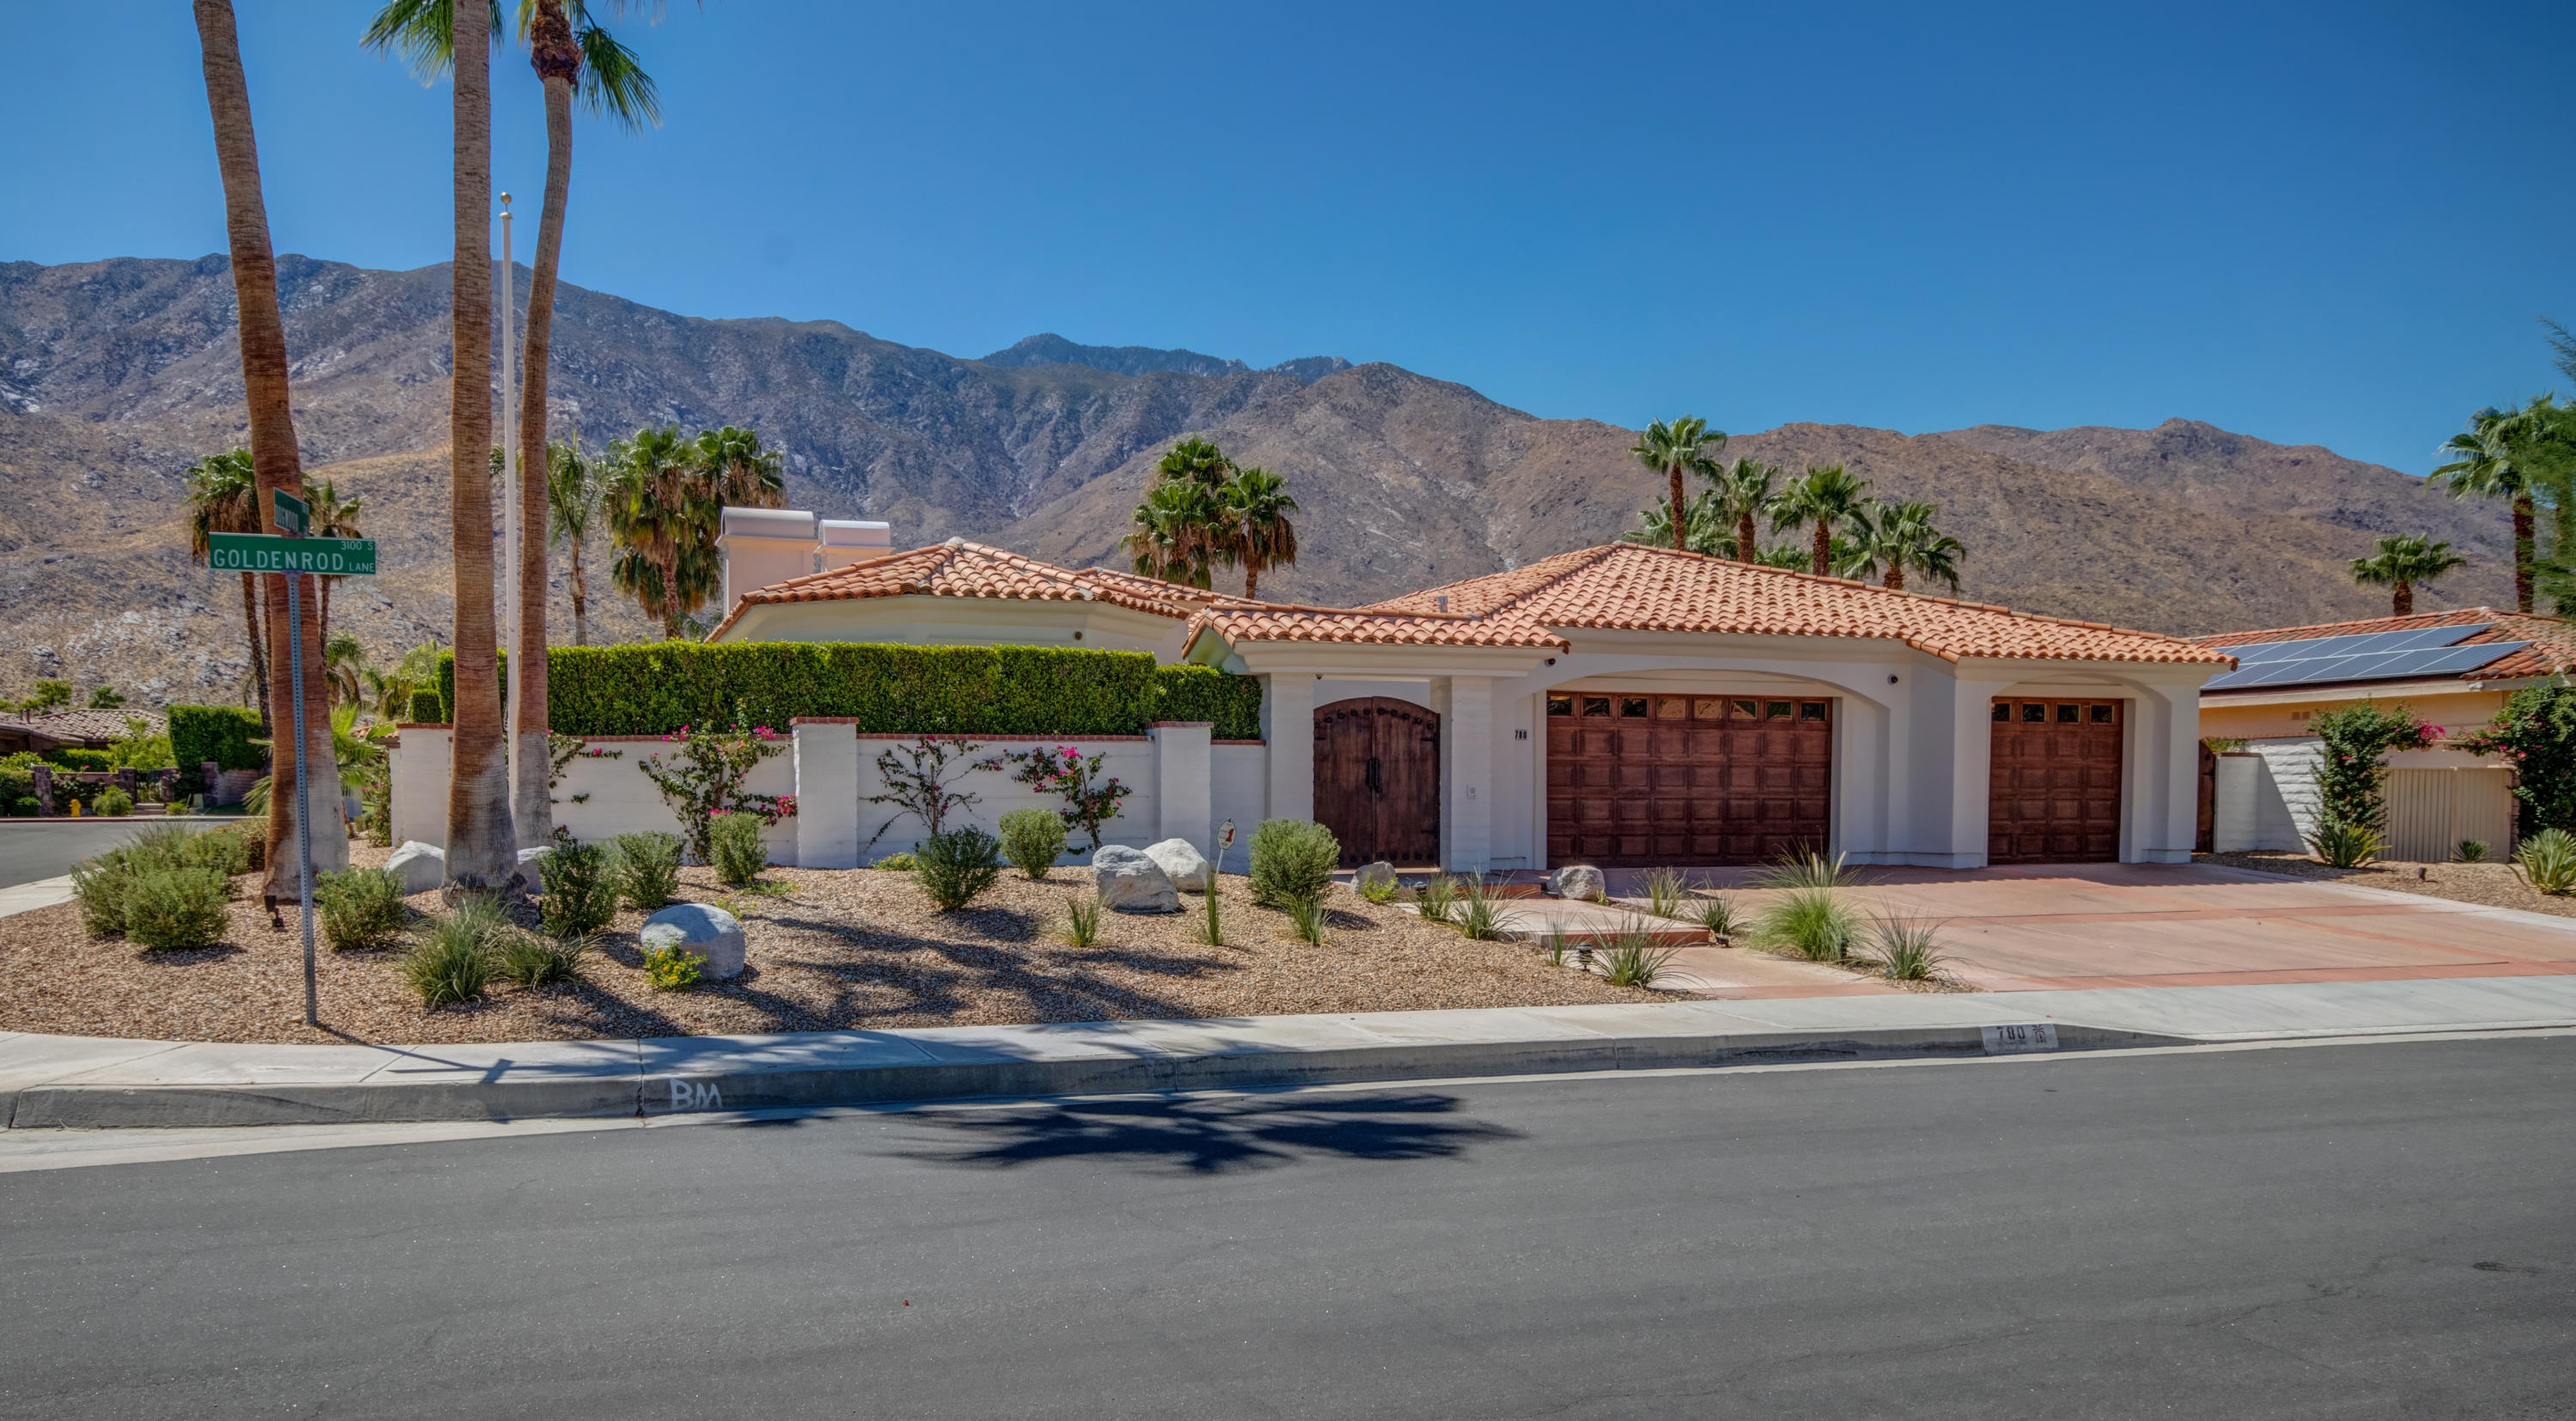 780 Dogwood Circle W, Palm Springs, California 92264, 4 Bedrooms Bedrooms, ,5 BathroomsBathrooms,Residential,For Sale,780 Dogwood Circle W,219035238